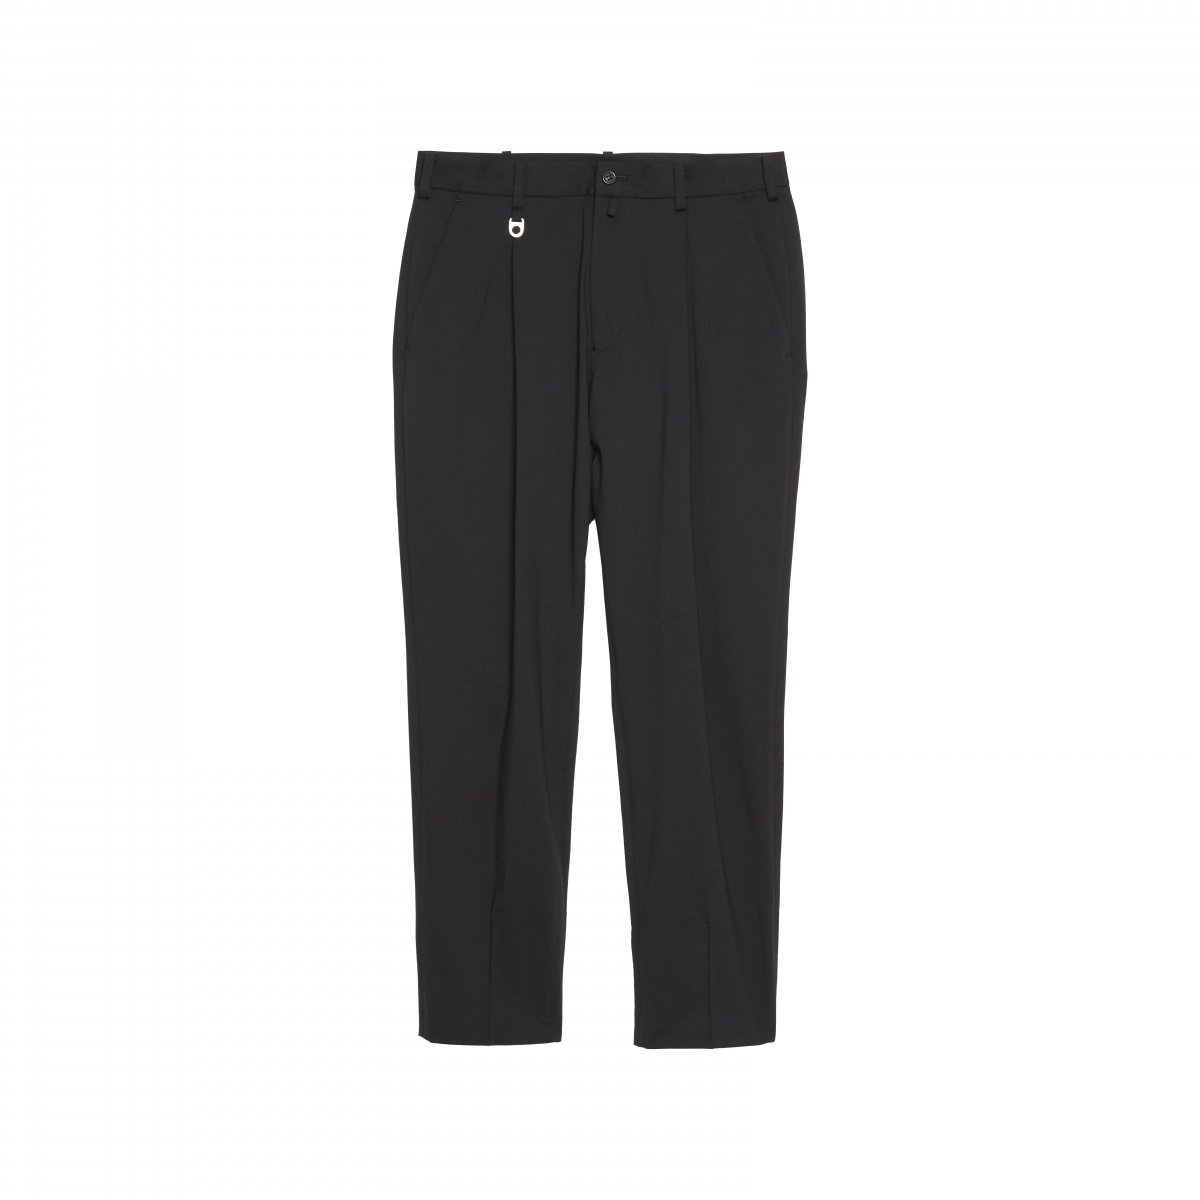 <img class='new_mark_img1' src='https://img.shop-pro.jp/img/new/icons5.gif' style='border:none;display:inline;margin:0px;padding:0px;width:auto;' />1TUCK TROUSERS / BLACK